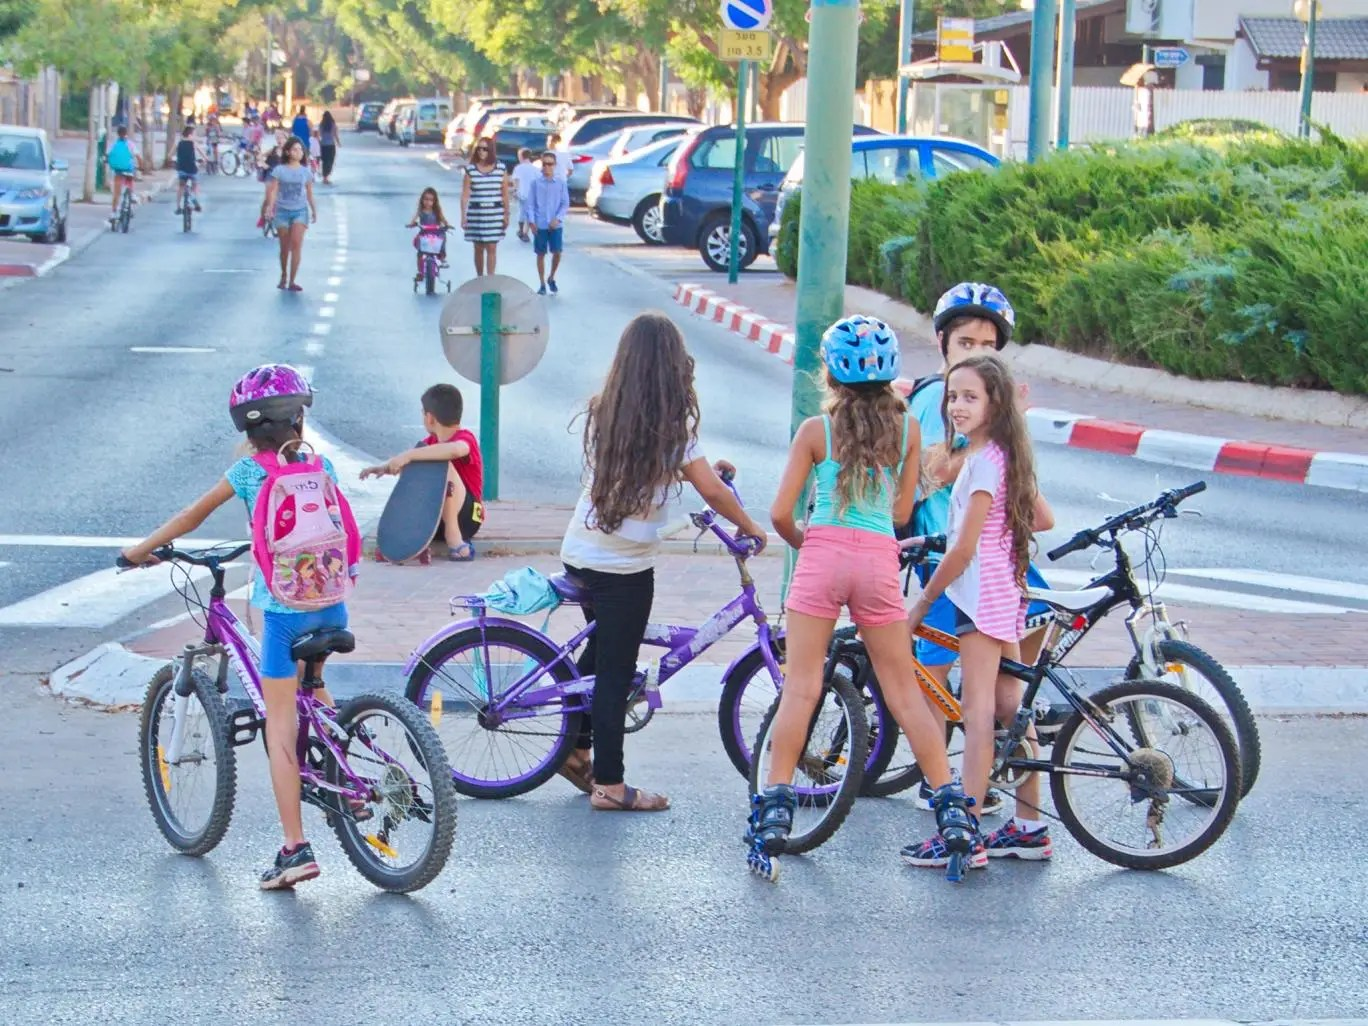 Girls with their bikes in Israel. Photo by dnaveh/ iStock